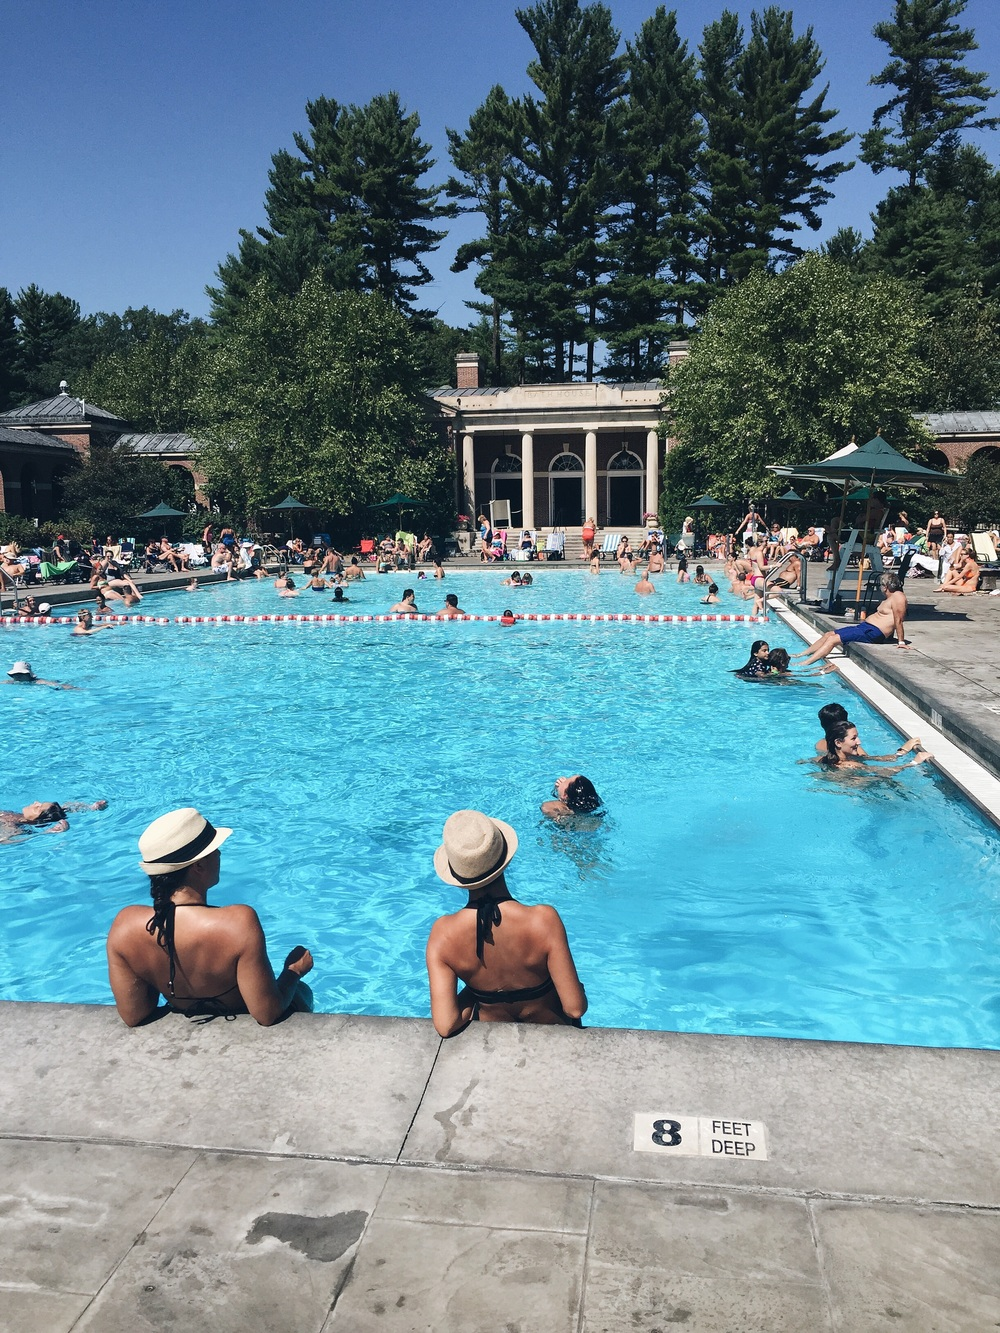 The Victoria Pool at Saratoga Springs State Park is gorgeous and spring-fed! It felt amazing to dive and swim laps.